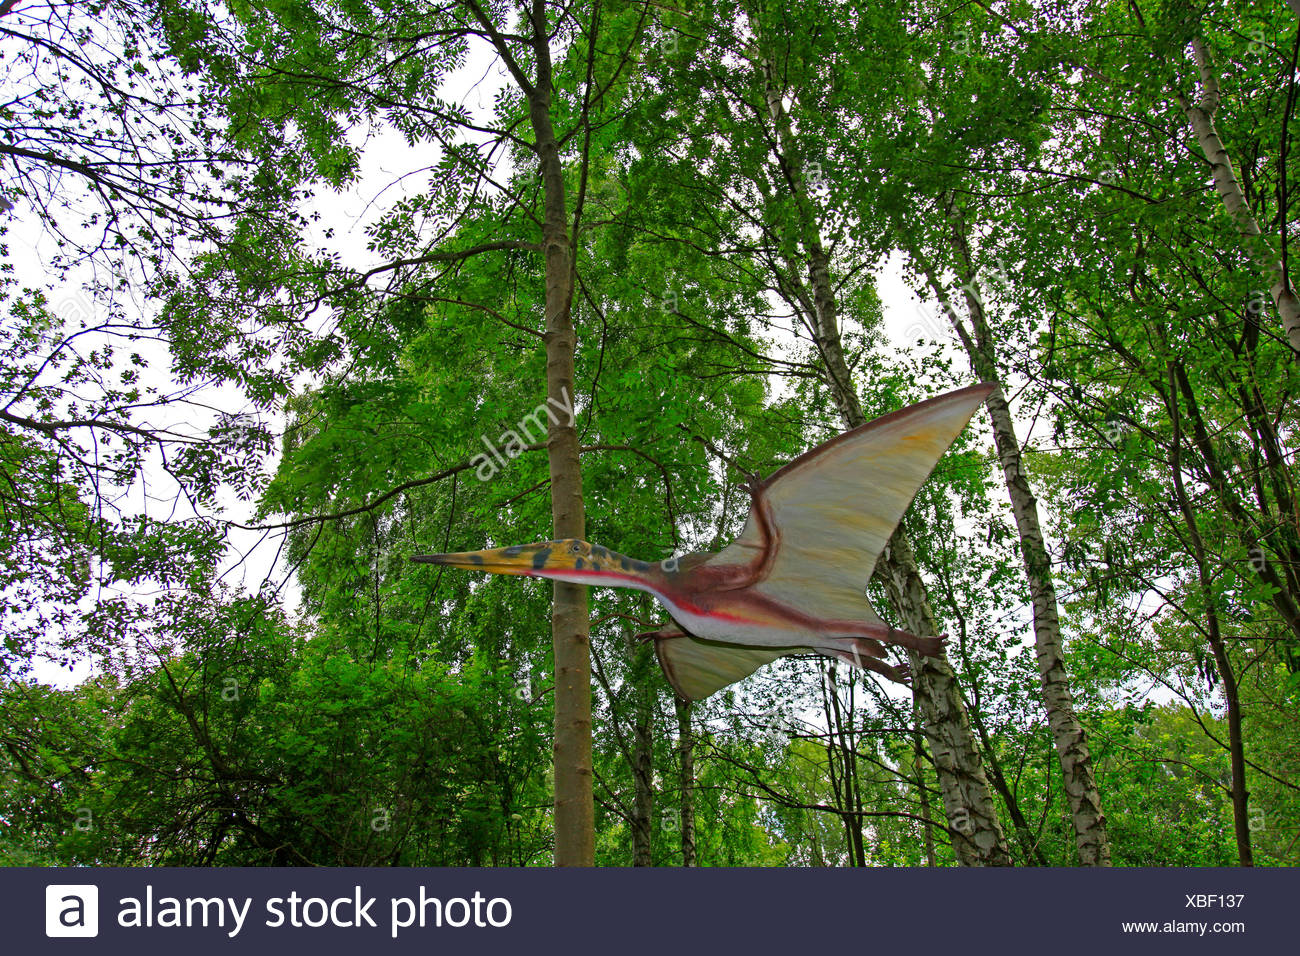 Pterodactylus (Pterodactylus), flying in a forest Stock Photo